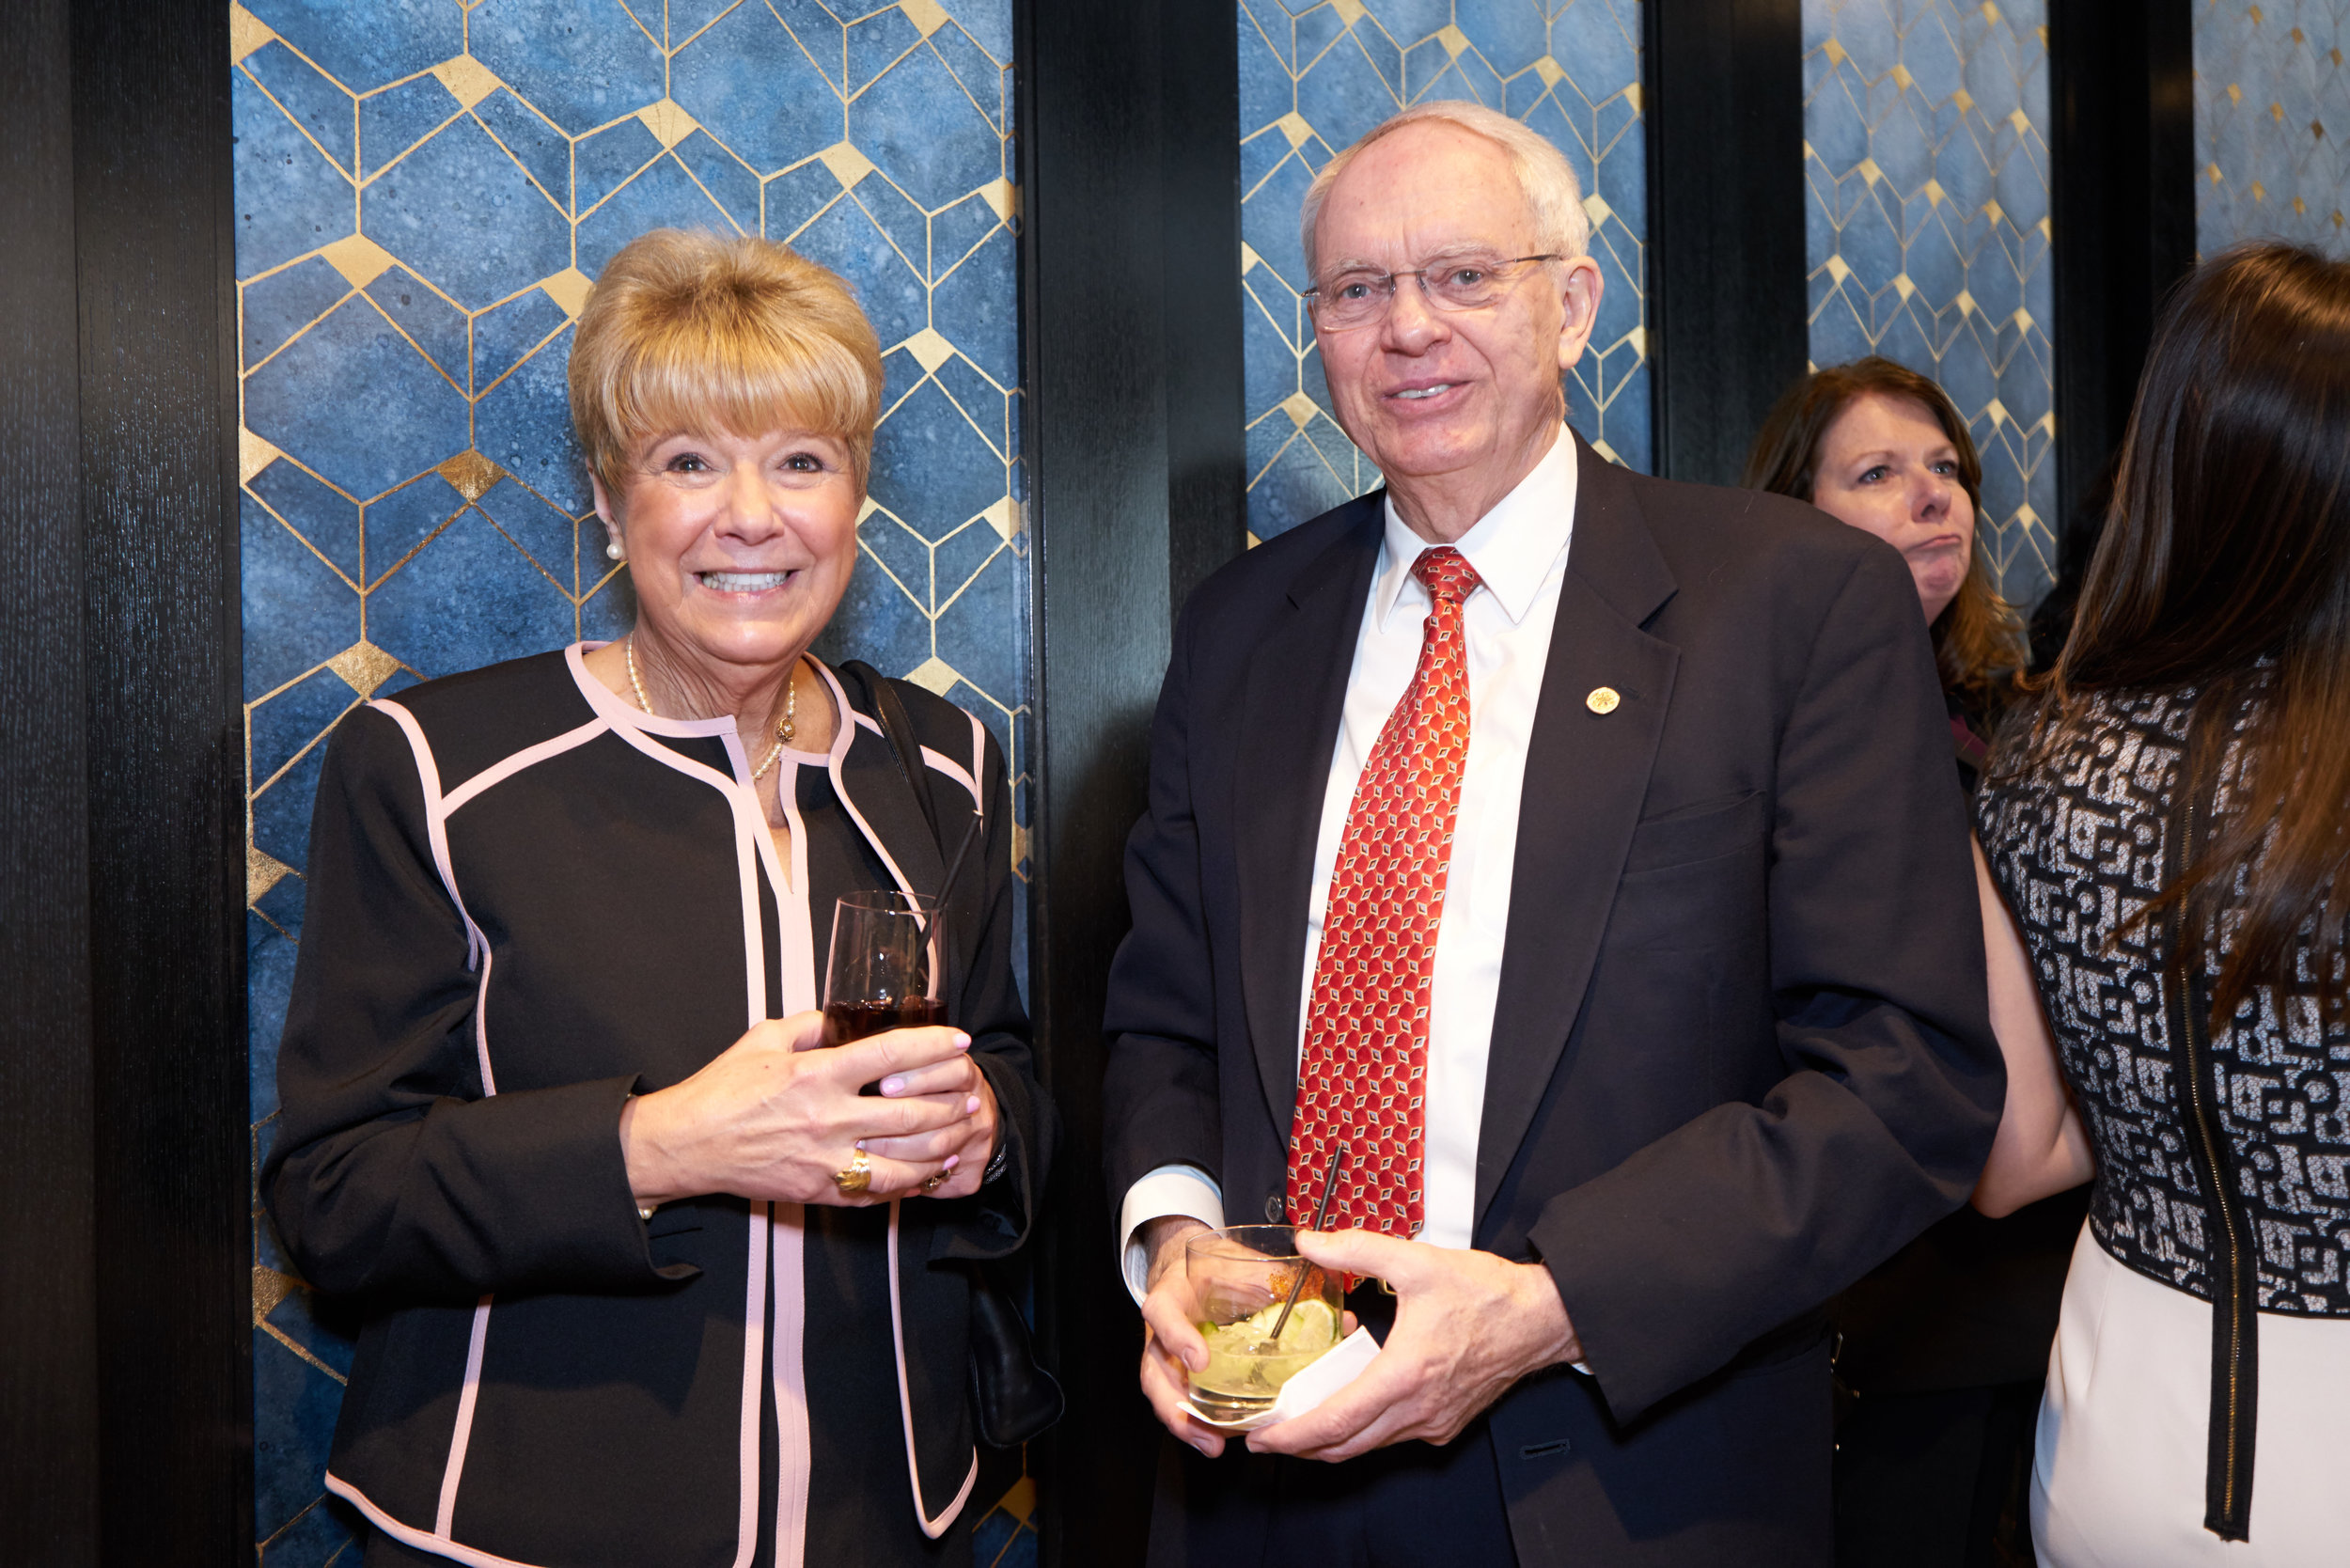 Maureen Biedermann with John  McLees of Baker McKenzie